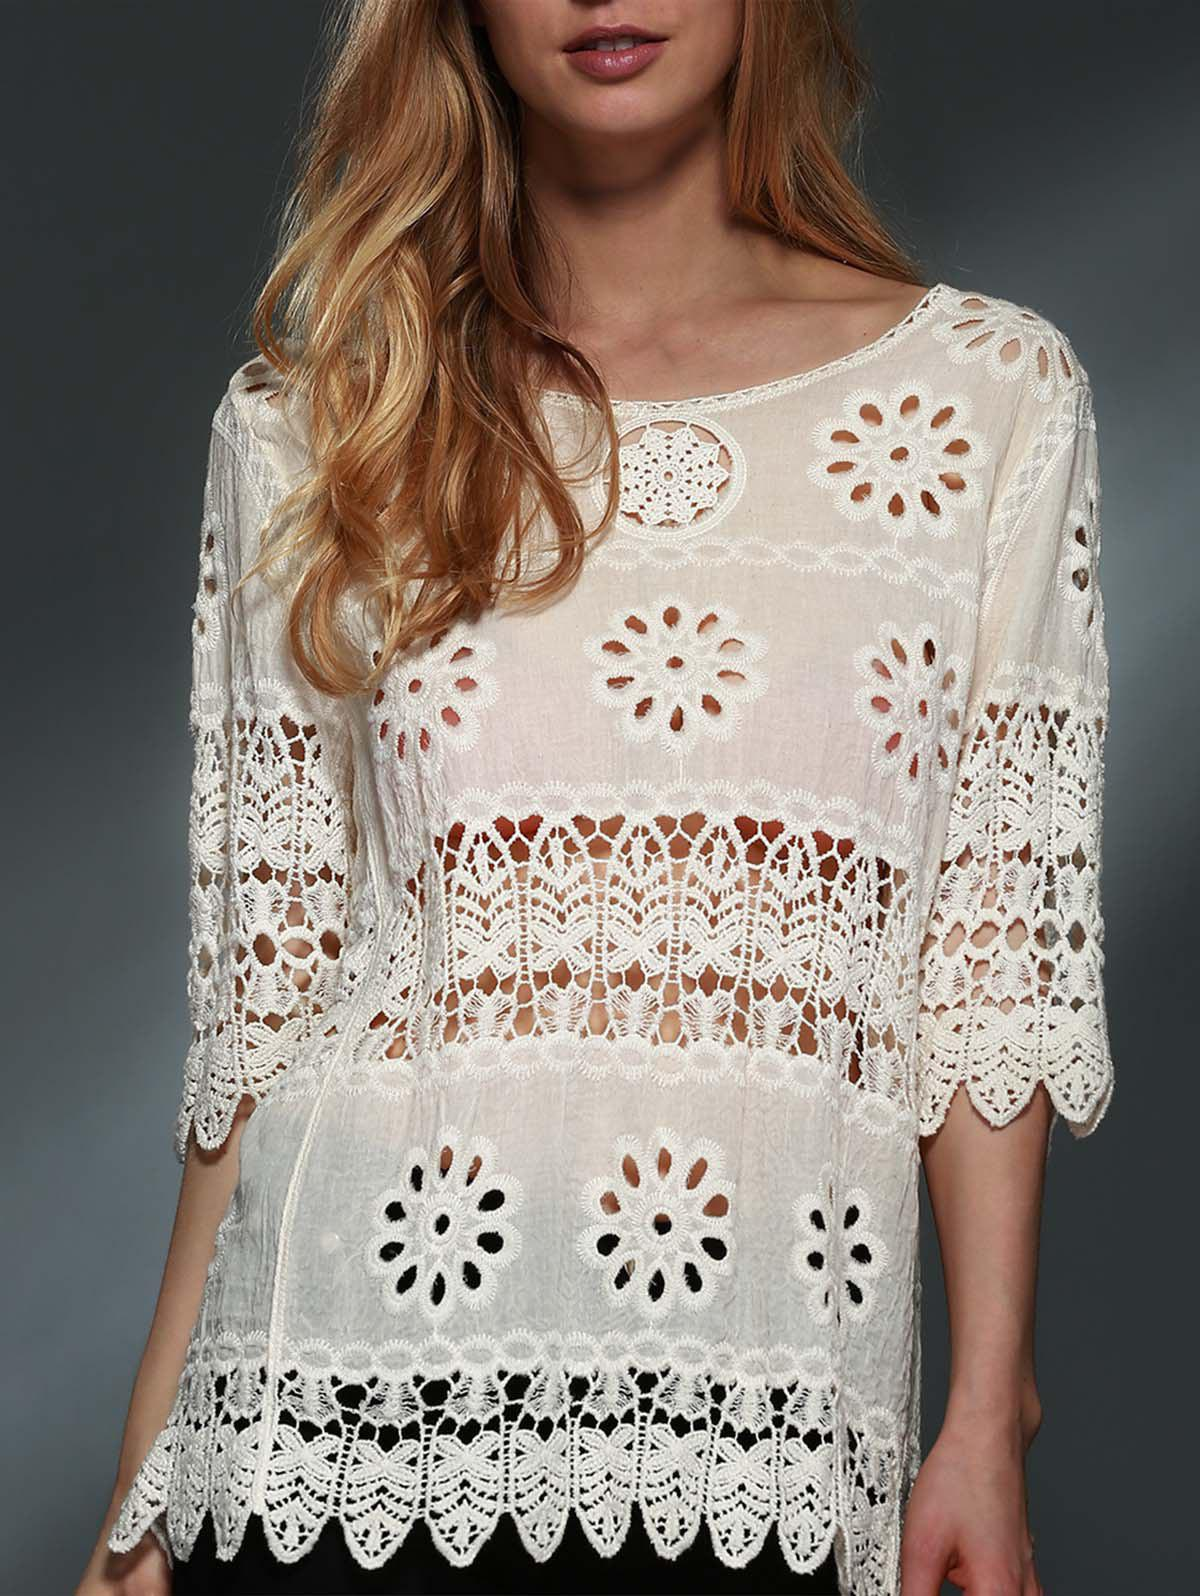 Stylish Scoop Neck 3/4 Sleeve Hollow Out Crochet Women's Blouse - OFF WHITE ONE SIZE(FIT SIZE XS TO M)